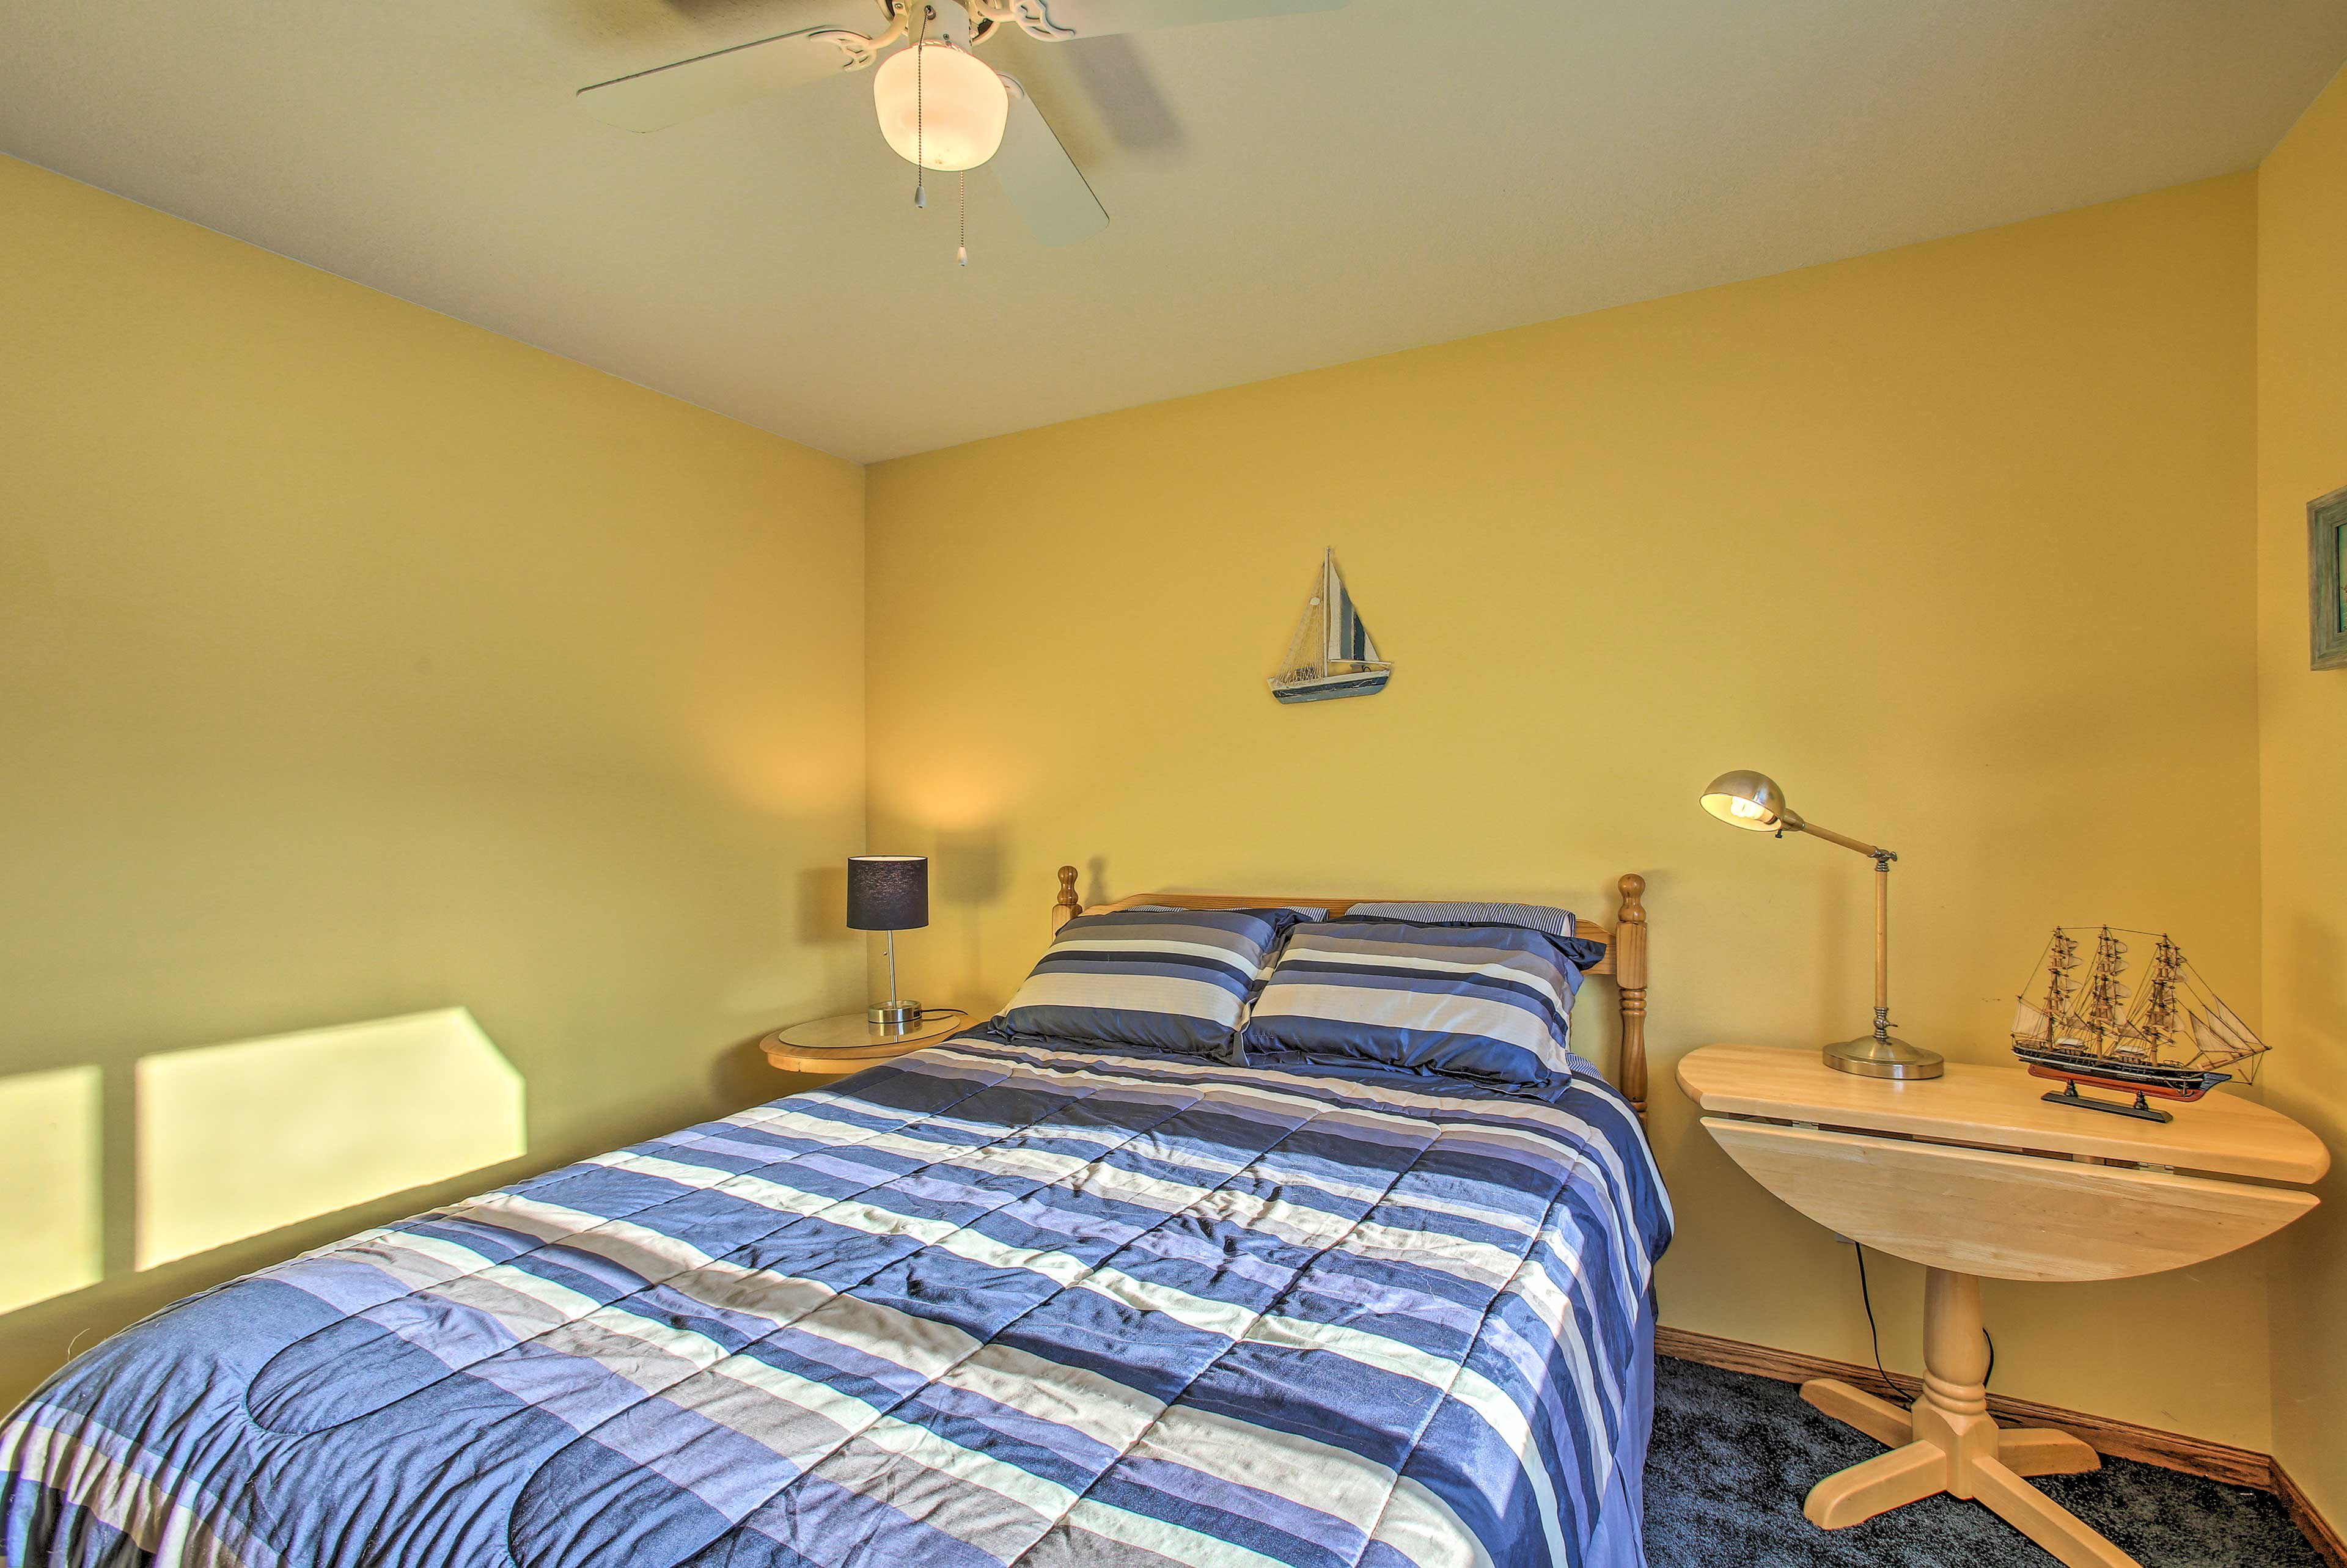 Bedroom 3 offers a queen-sized bed and nightstand/table combo.